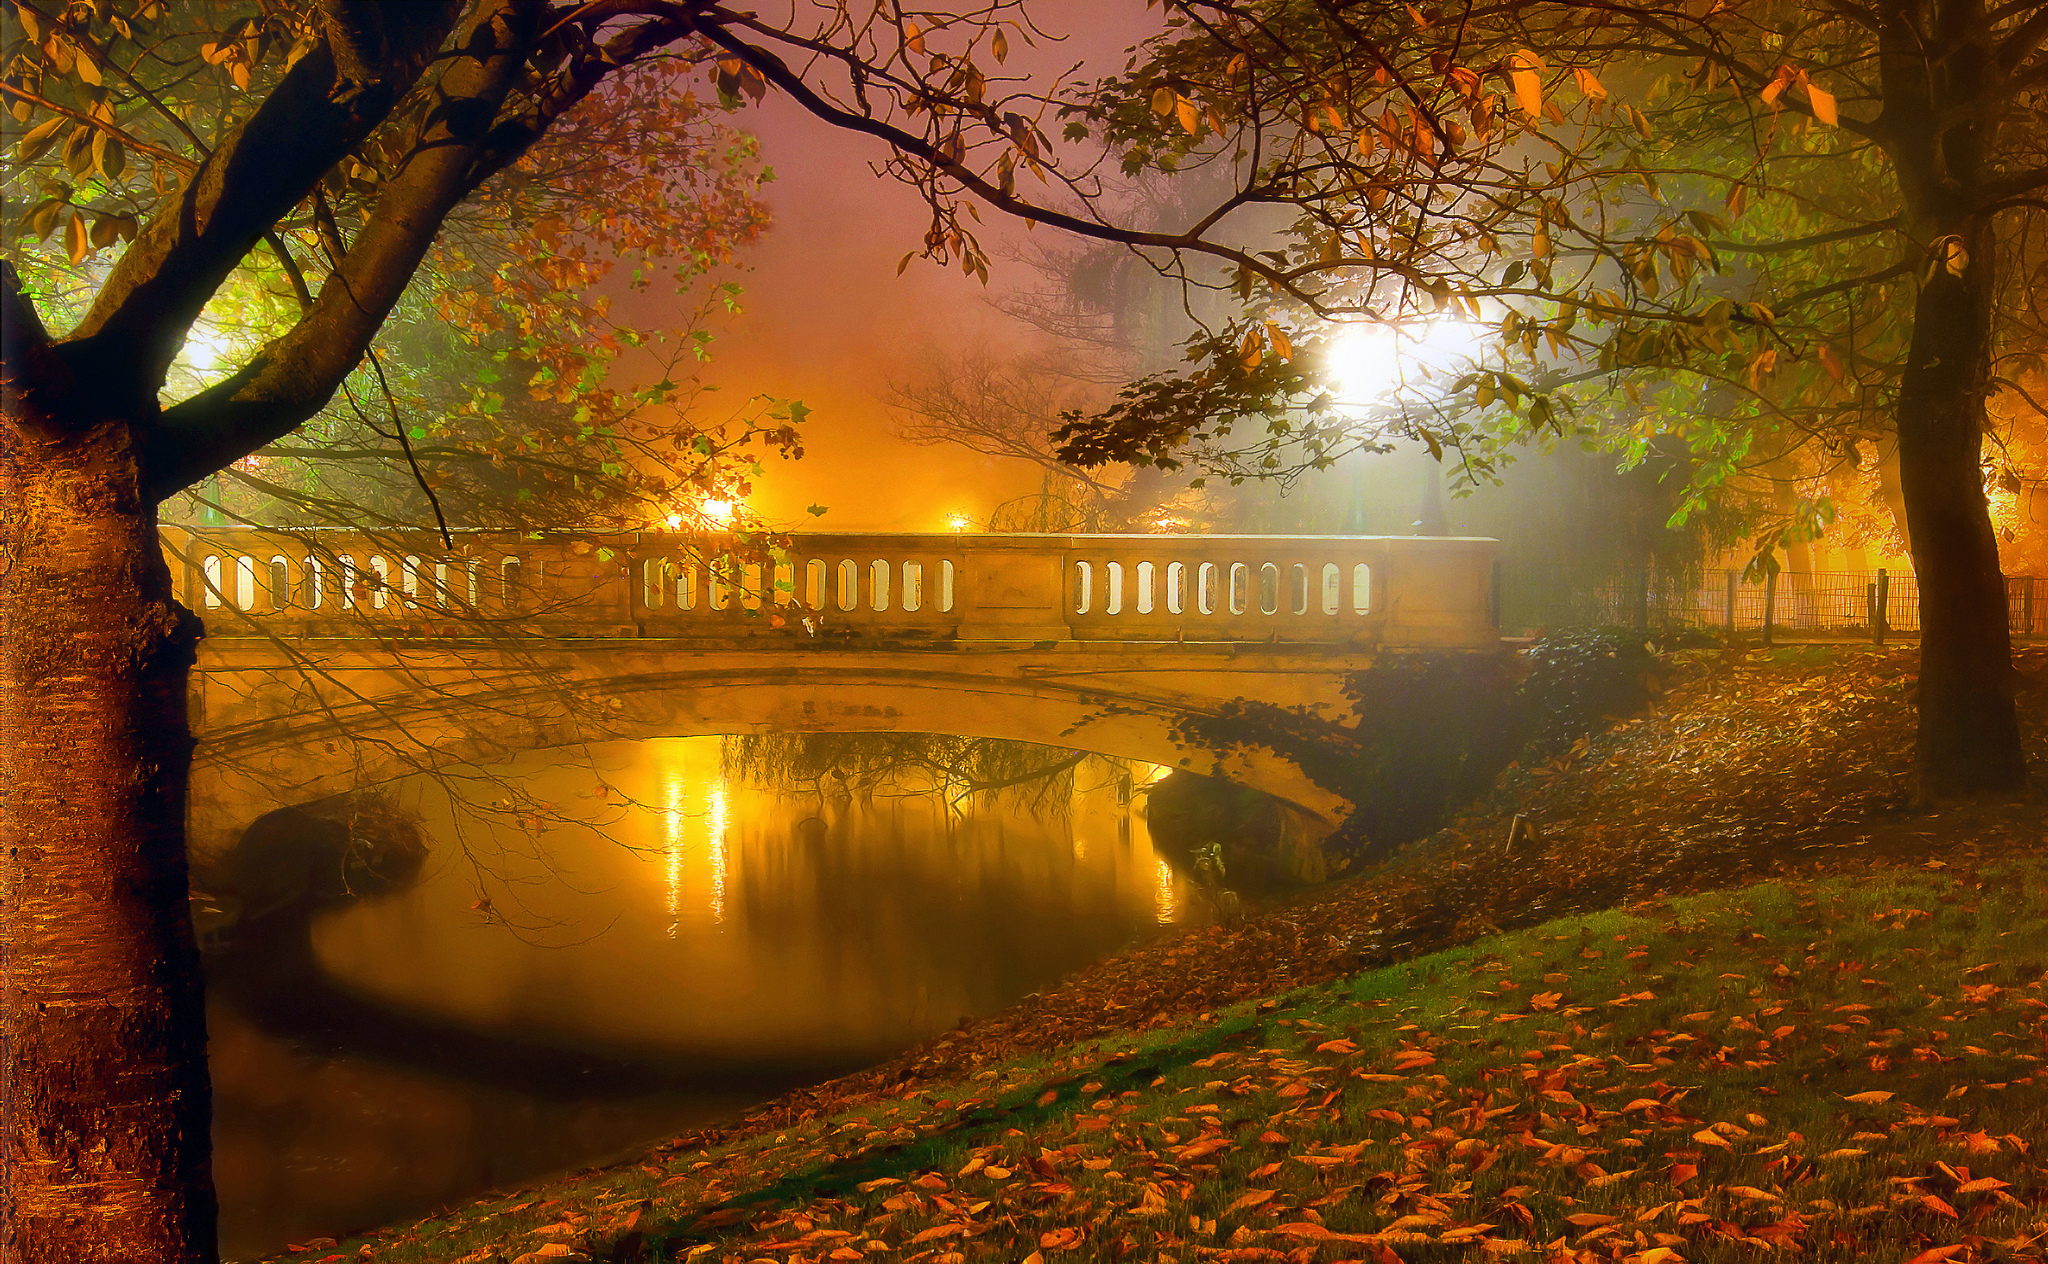 Fall Hd Wallpapers 1080p Widescreen Misty Night In Autumn Park Hd Wallpaper Background Image